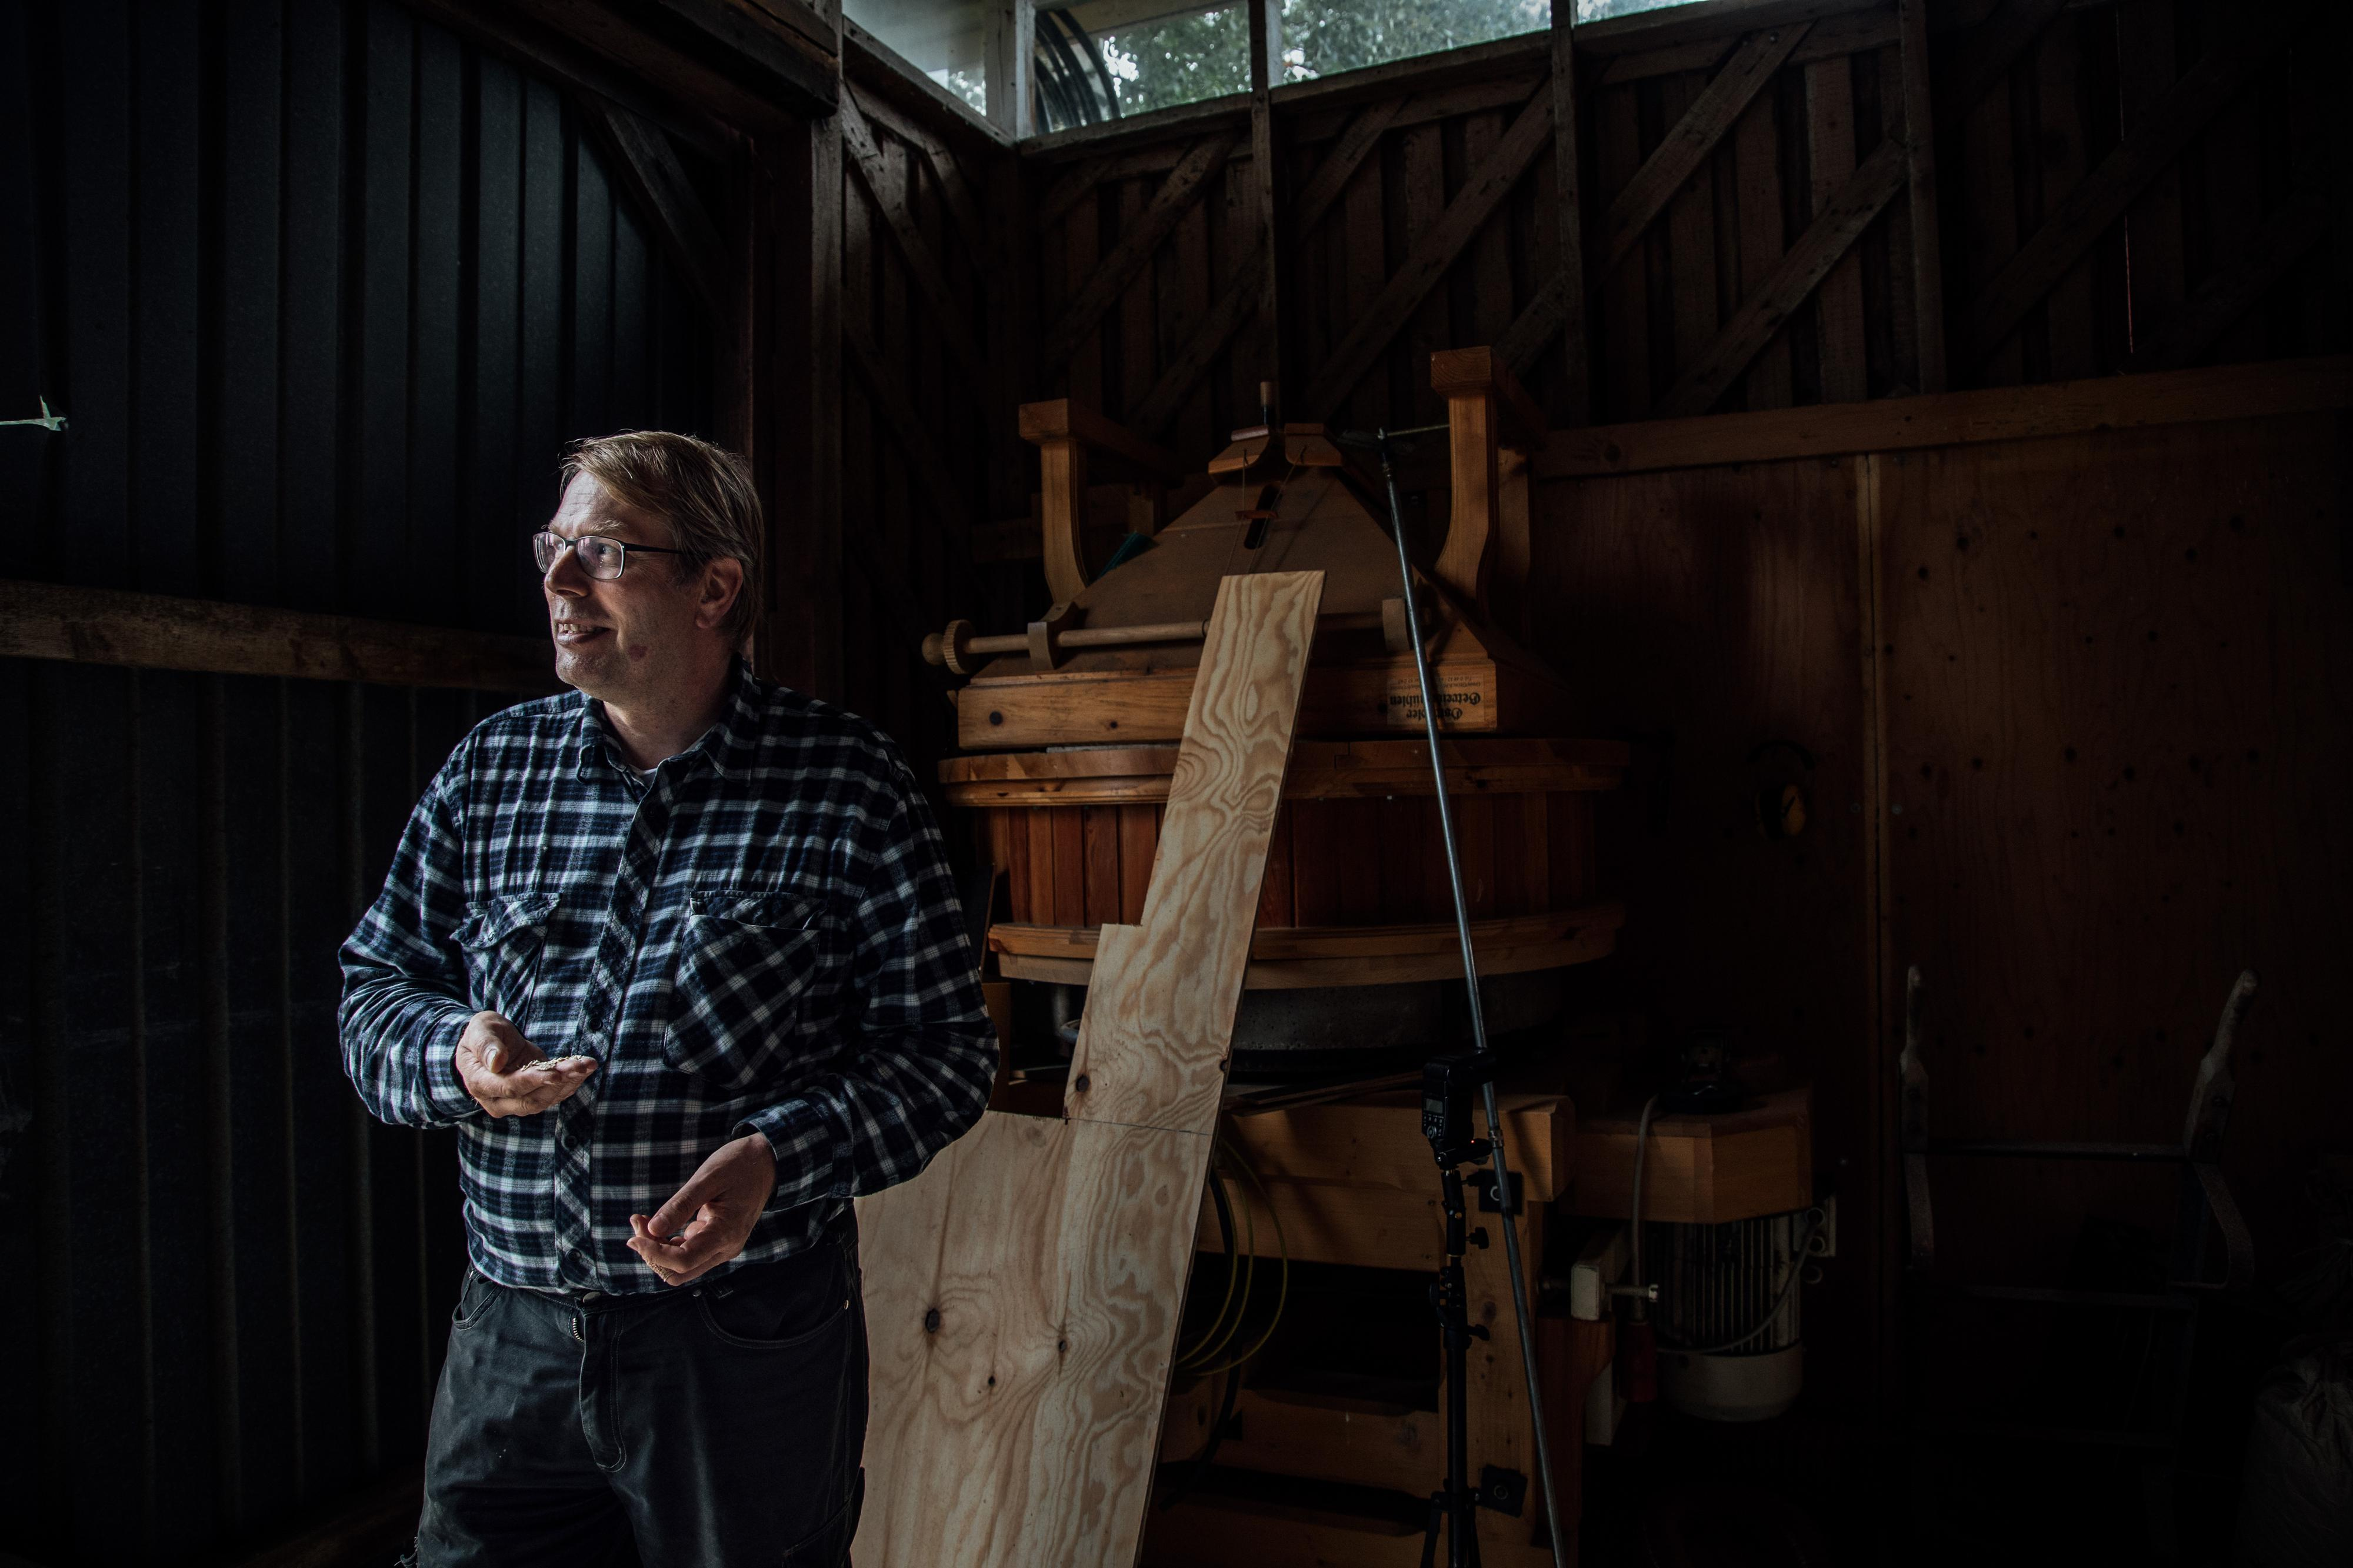 The oat is produced using a wooden mill, Eerola explains.